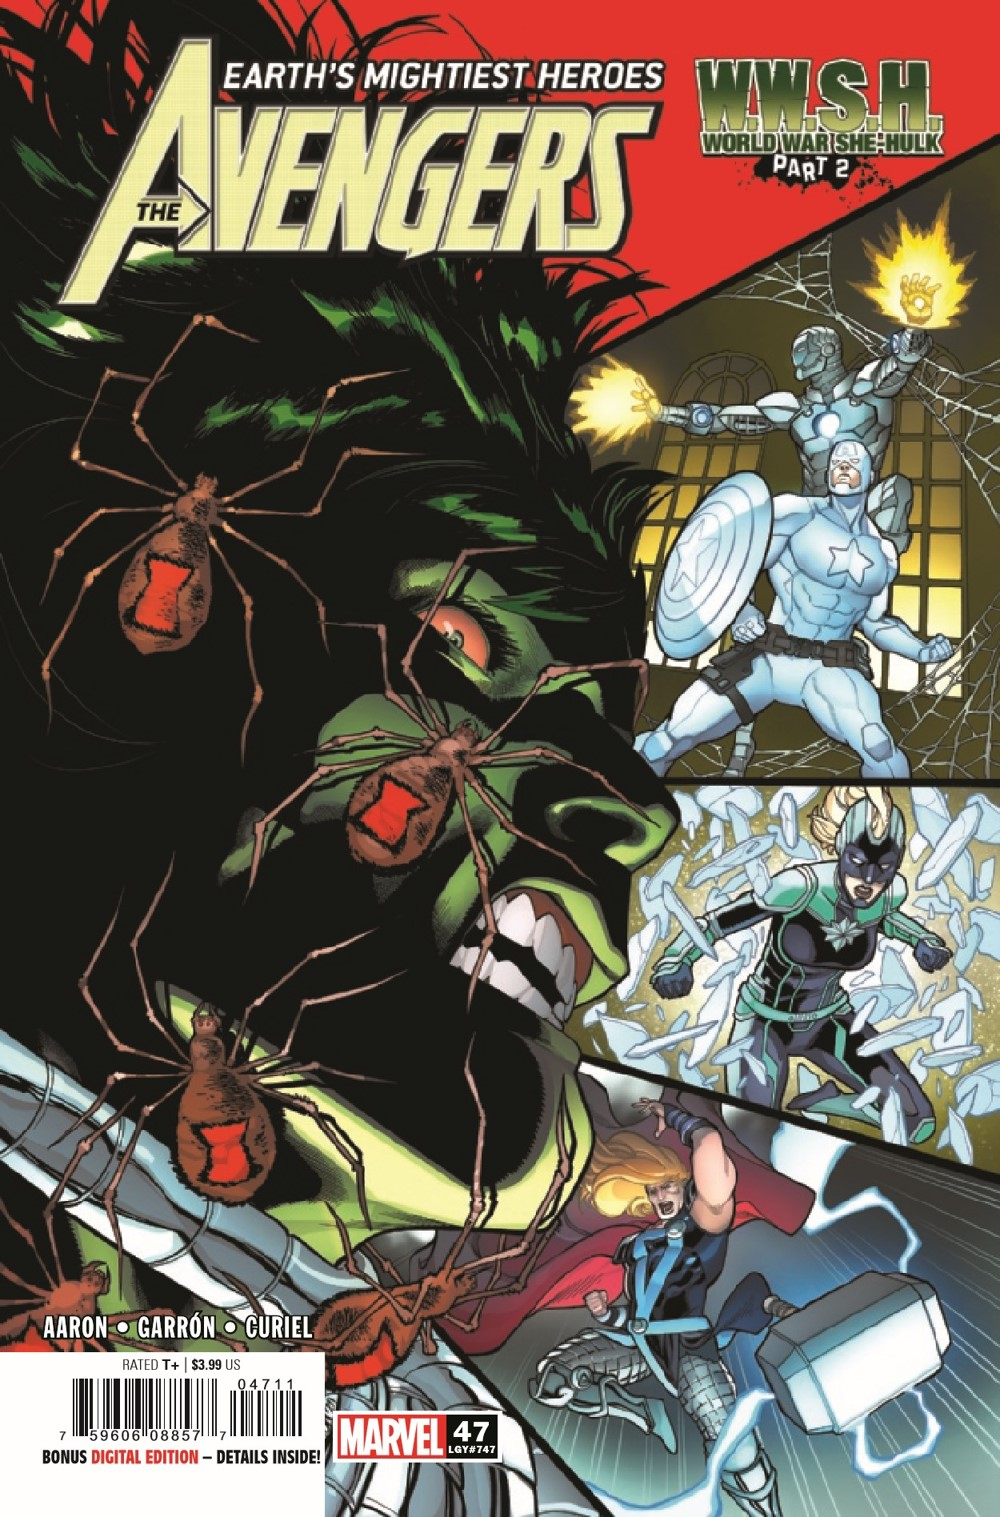 AVEN2018047_Preview-1 ComicList Previews: THE AVENGERS #47